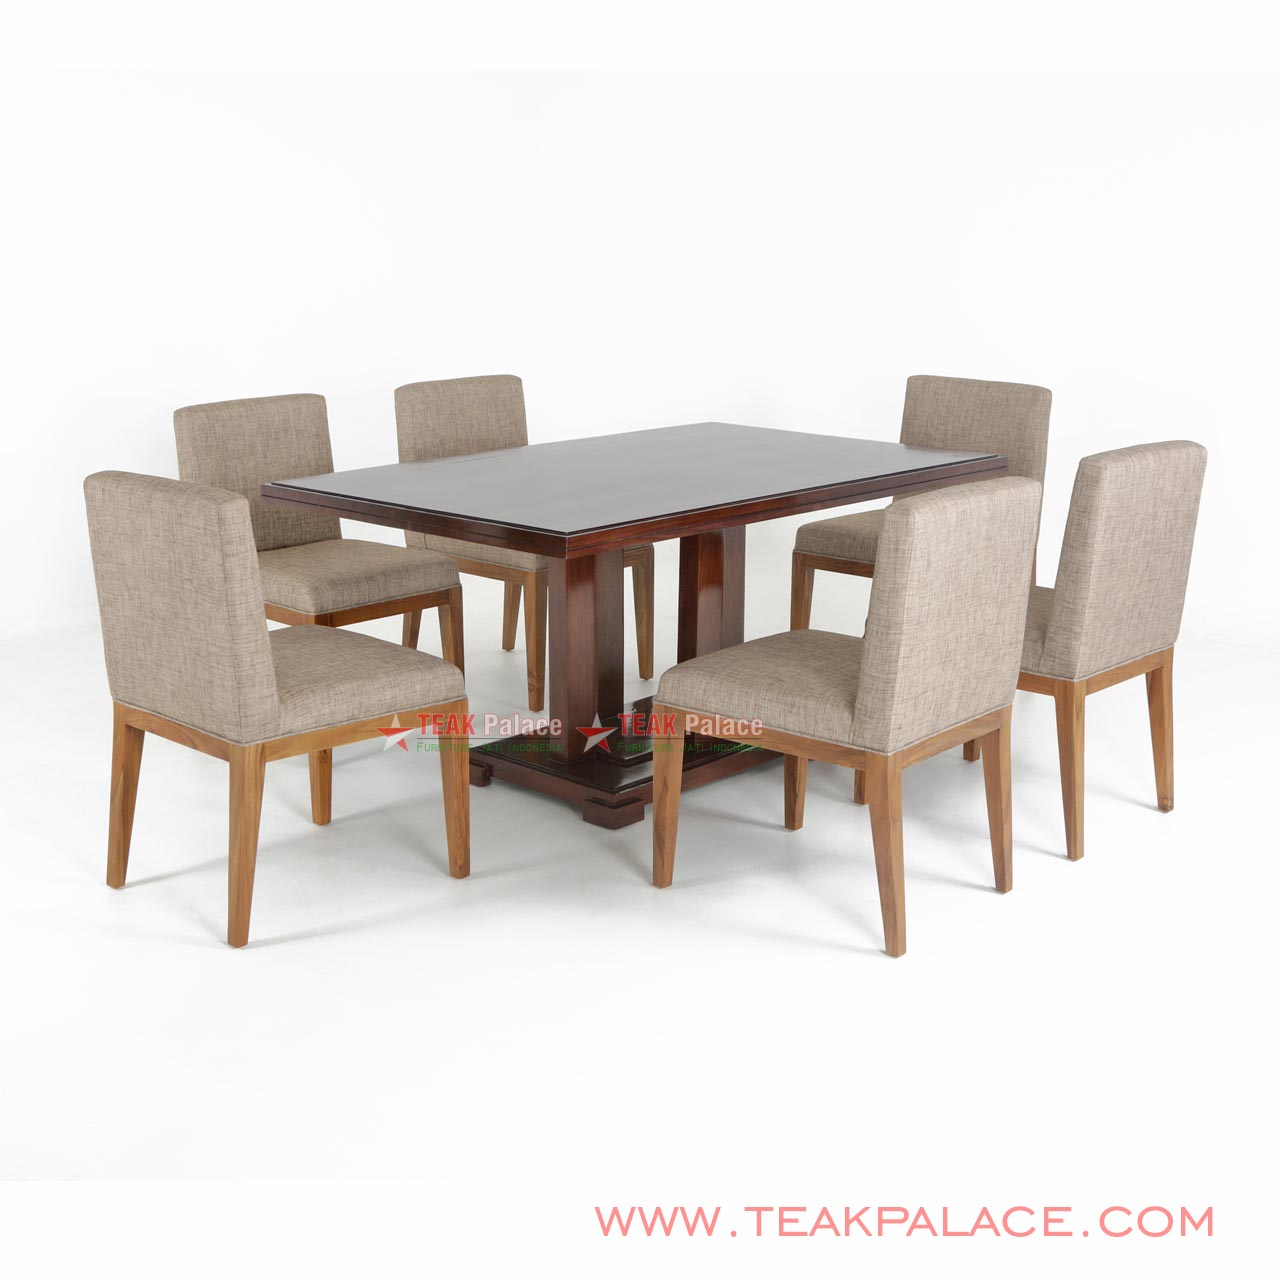 Cucina Letters Kitchen Decor, Dining Chair Minimalist Set Of 6 People Tegal Series